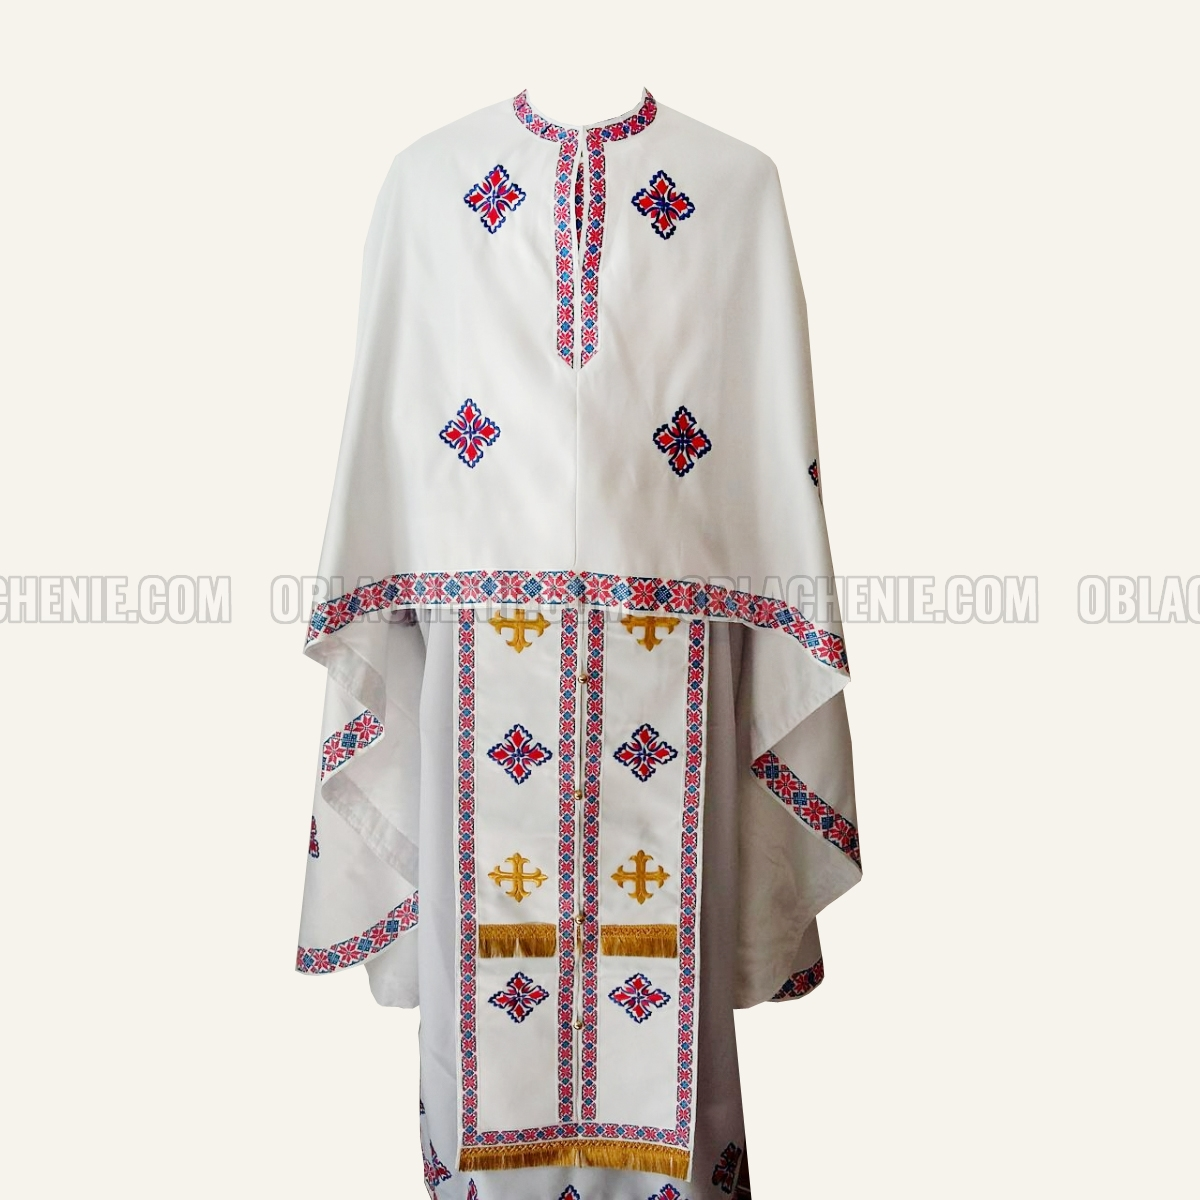 Embroidered priest's vestments 10233